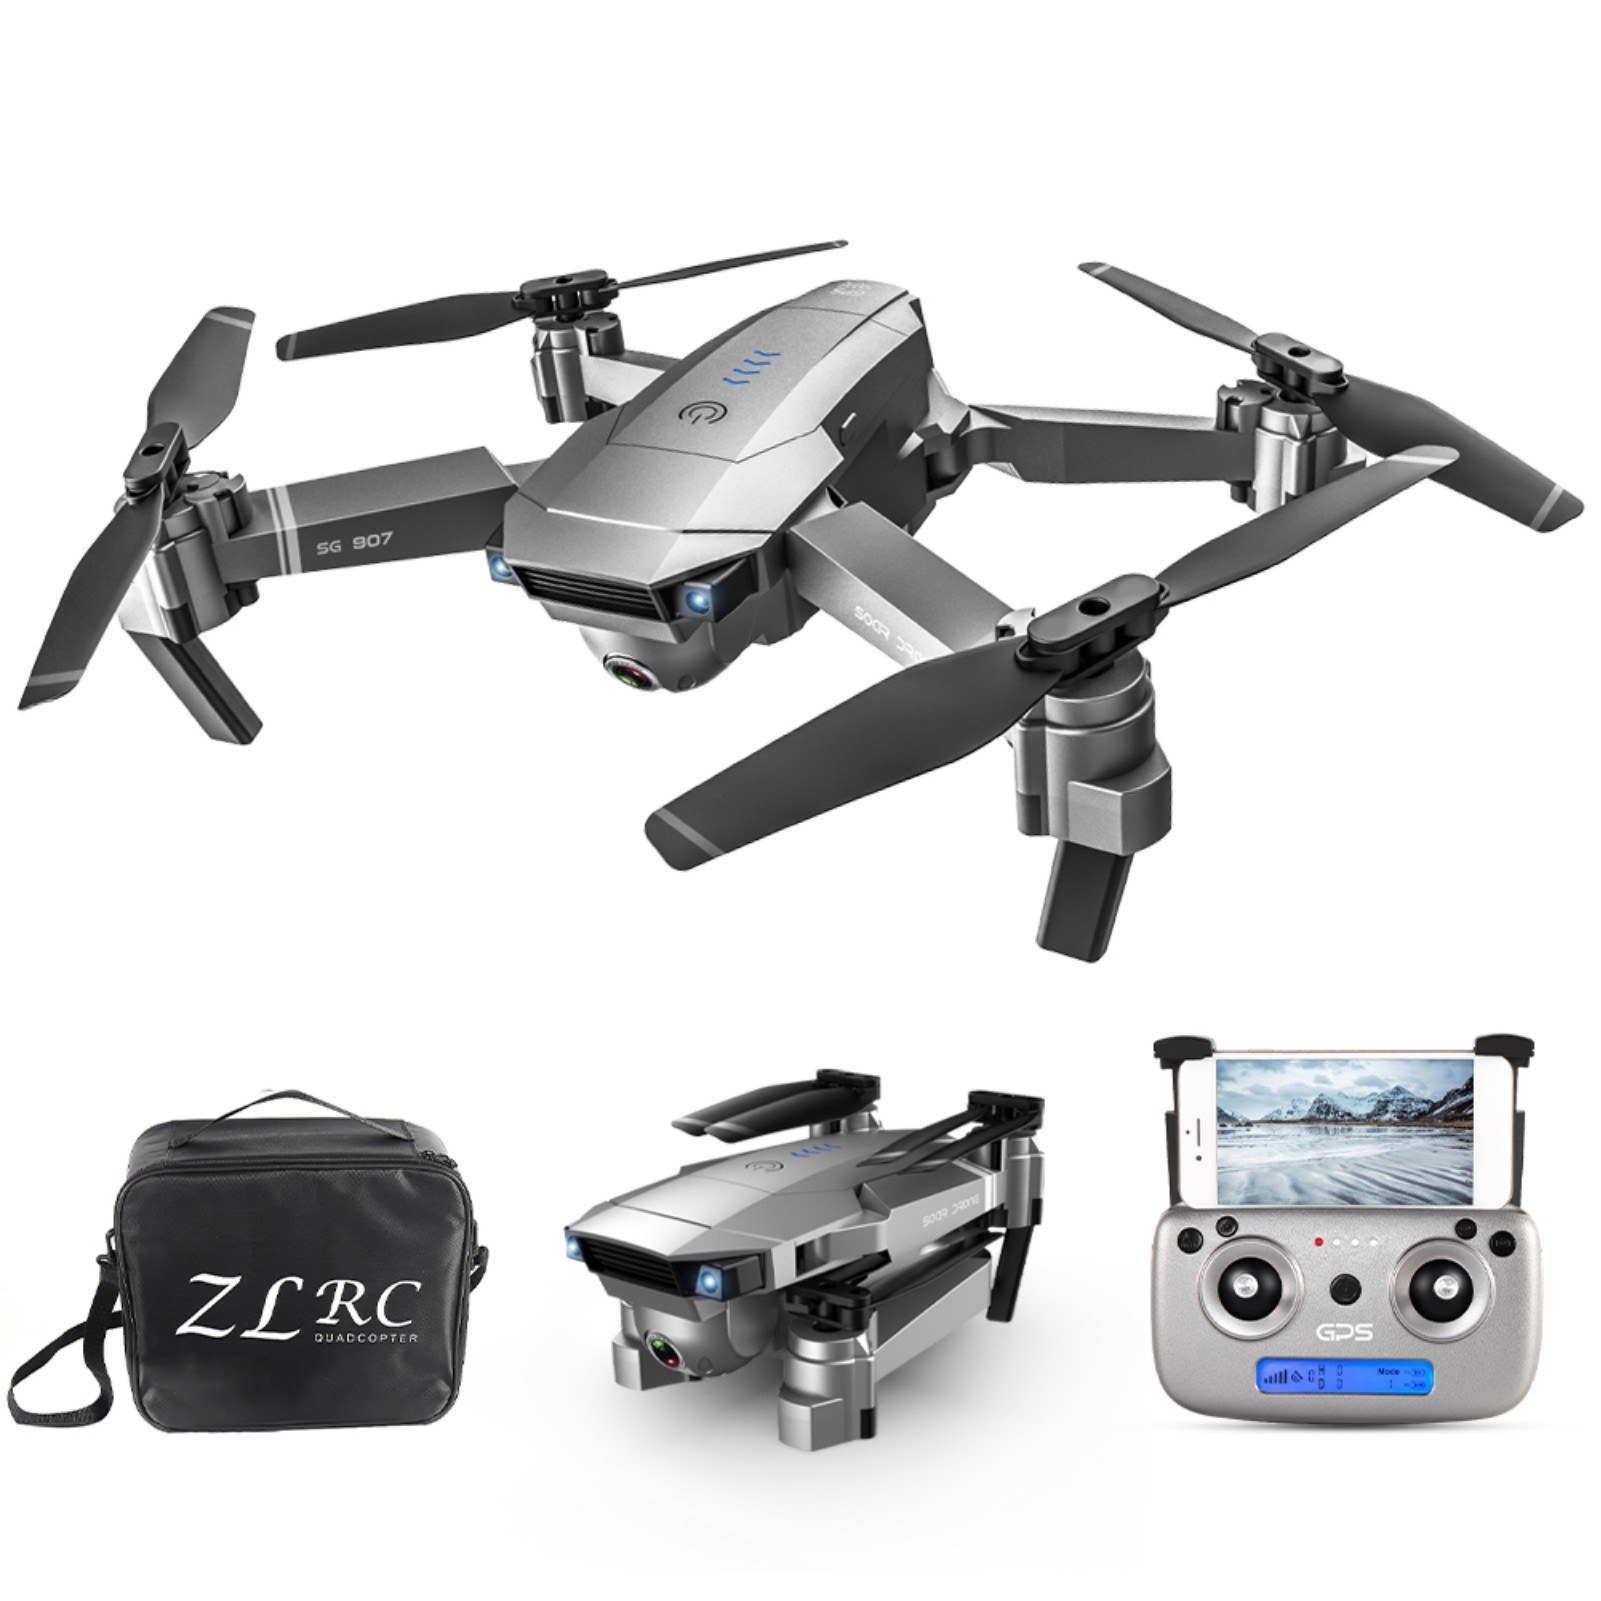 Tomtop - [EU Clearance Sale] SG907 GPS 5G WIFI 1080P RC Drone with Dual Camera 18 mins Flight Time with Bag, $44.99 (Inclusive of VAT)